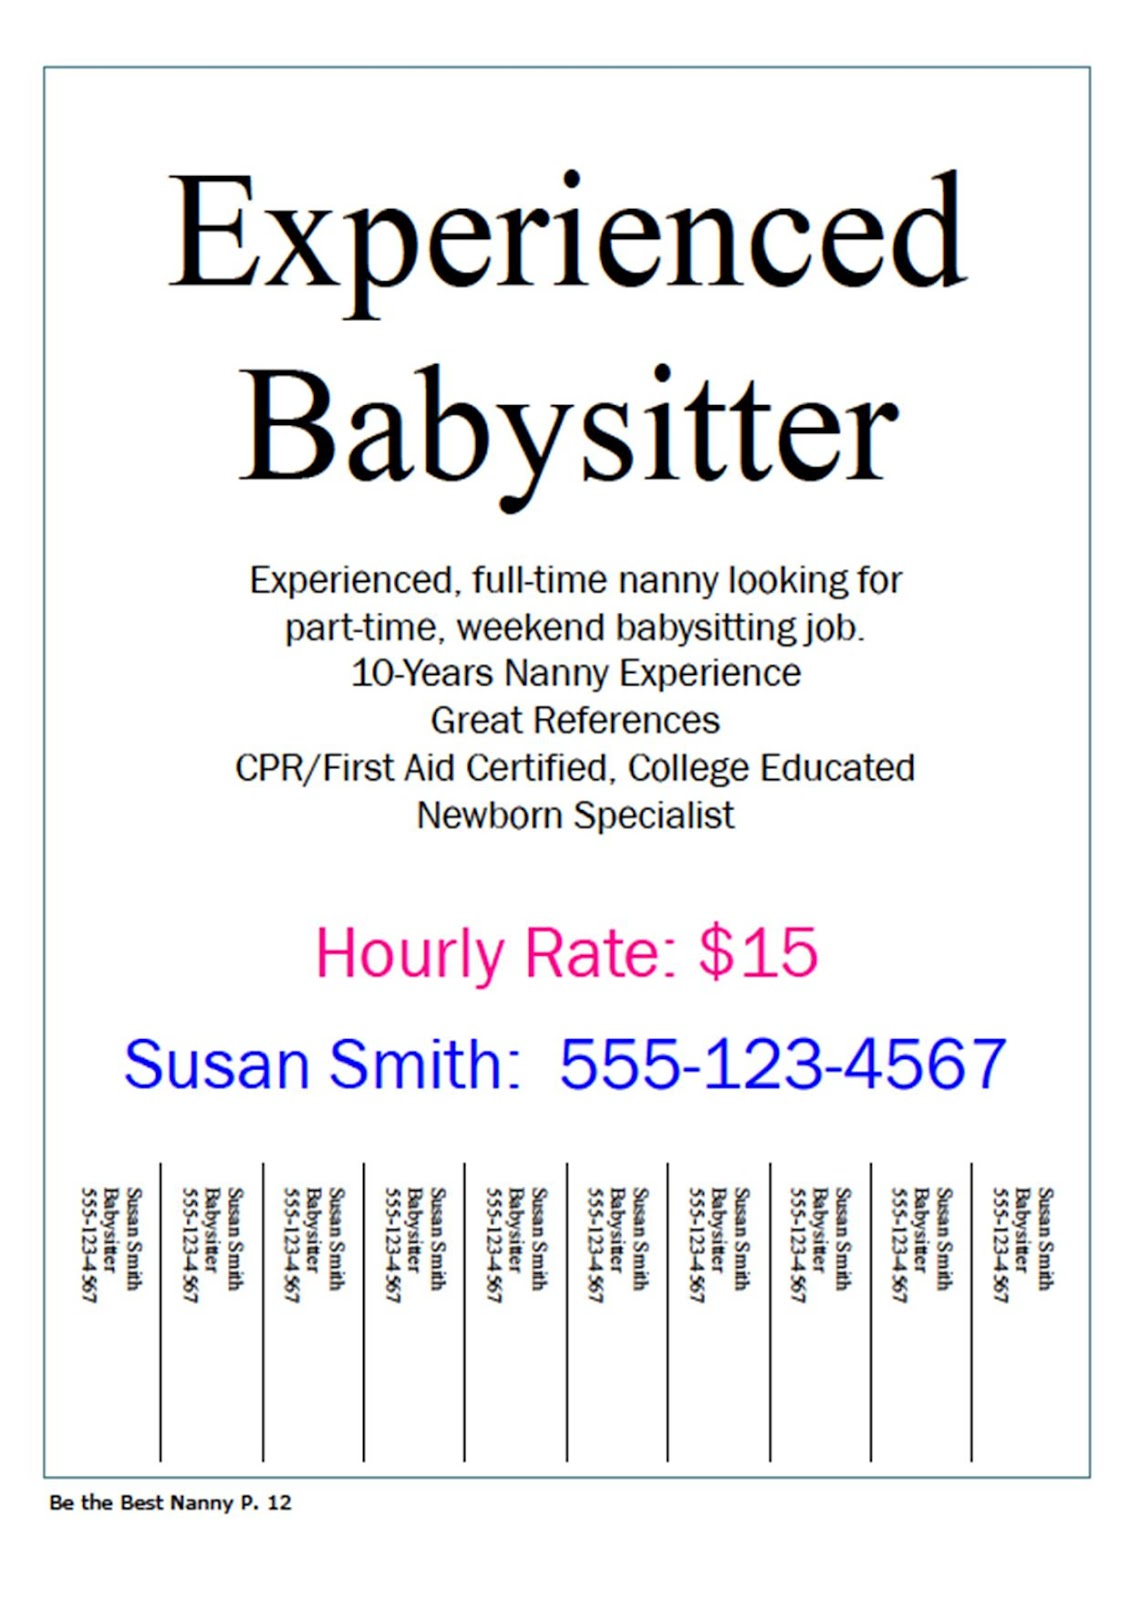 Nanny sample job advertisement